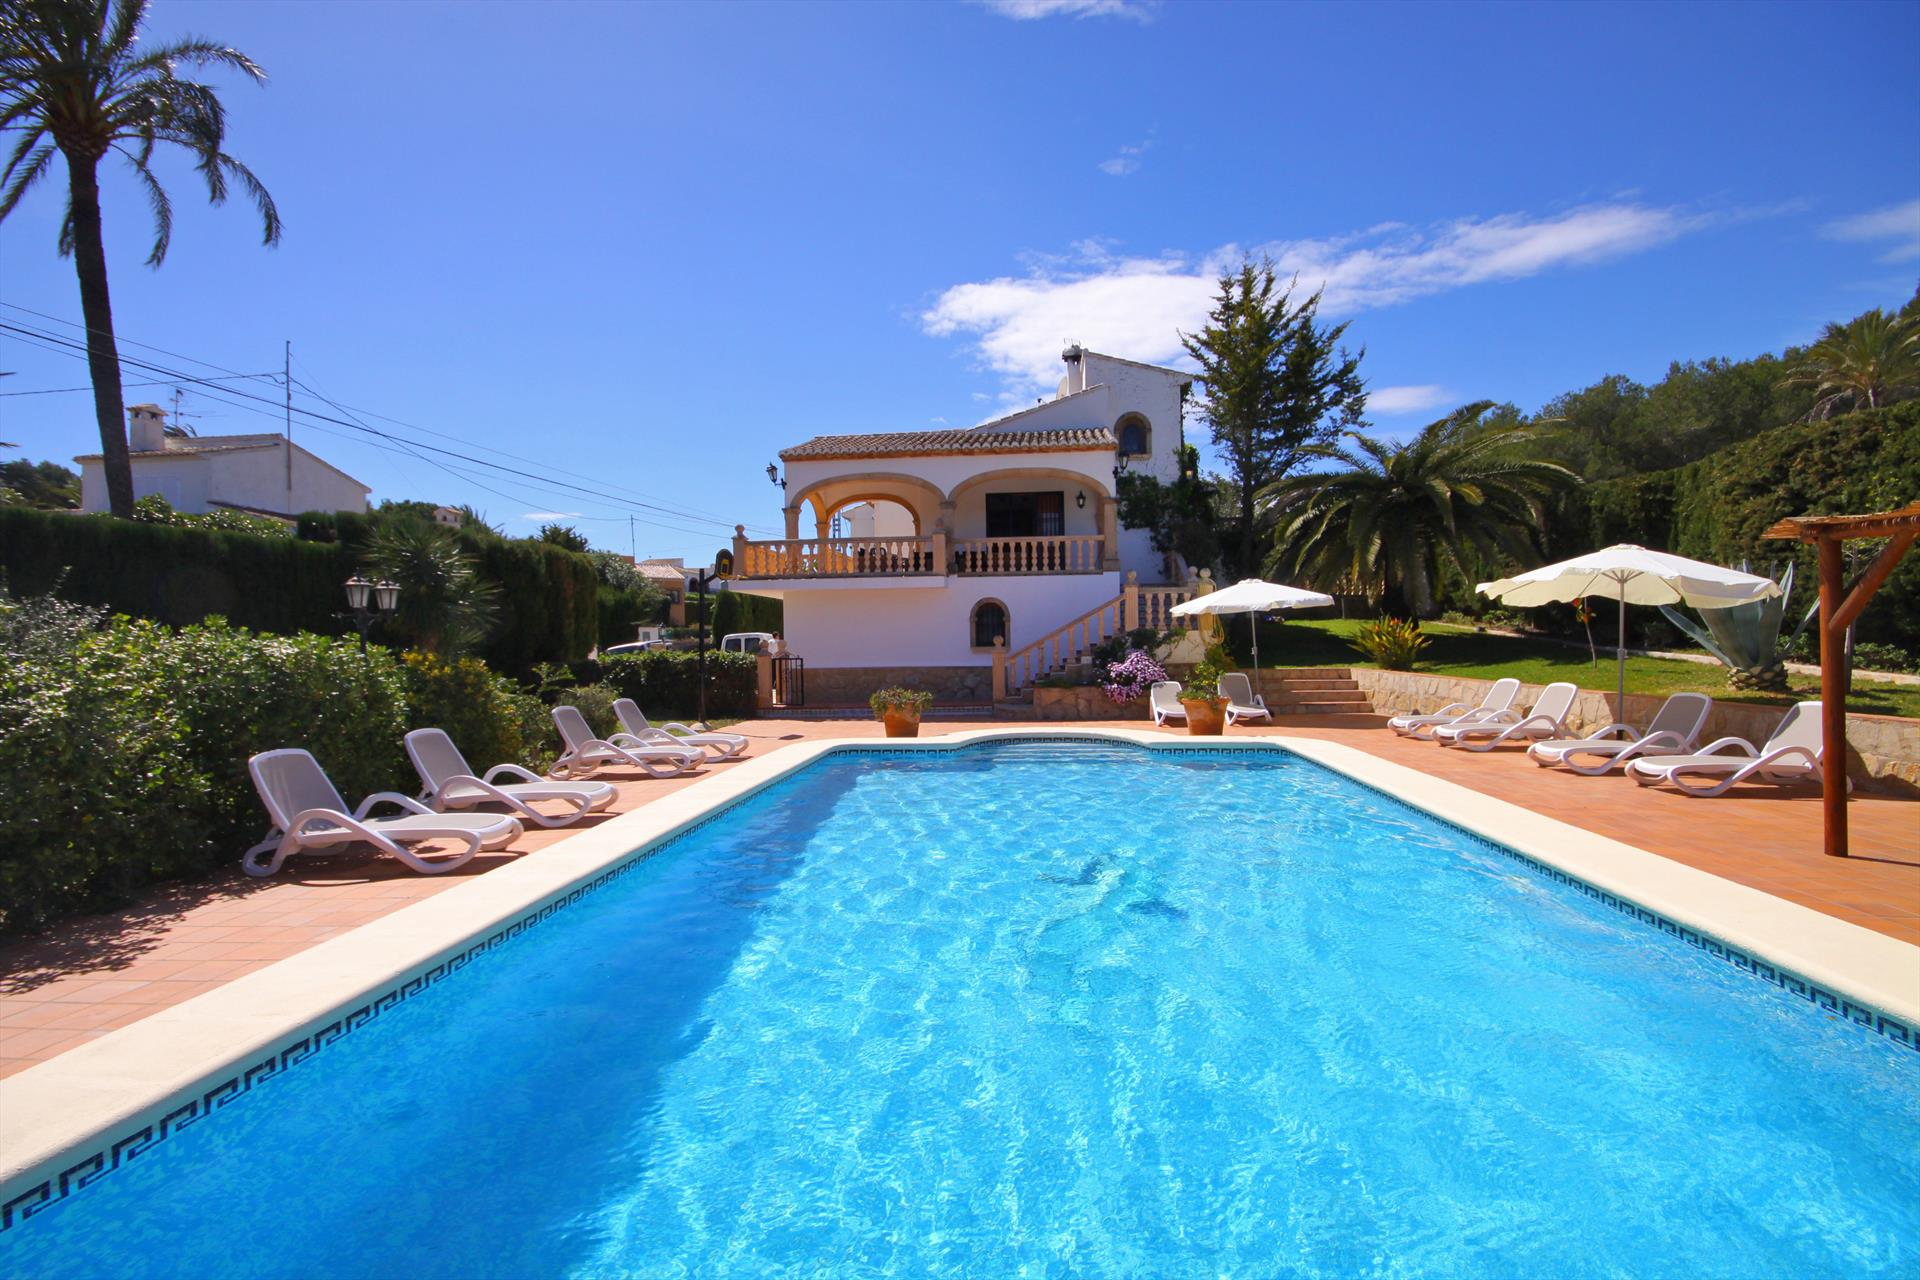 Villa Pinosol, Large and comfortable villa with private pool in Javea, on the Costa Blanca, Spain for 16 persons. The house is situated.....